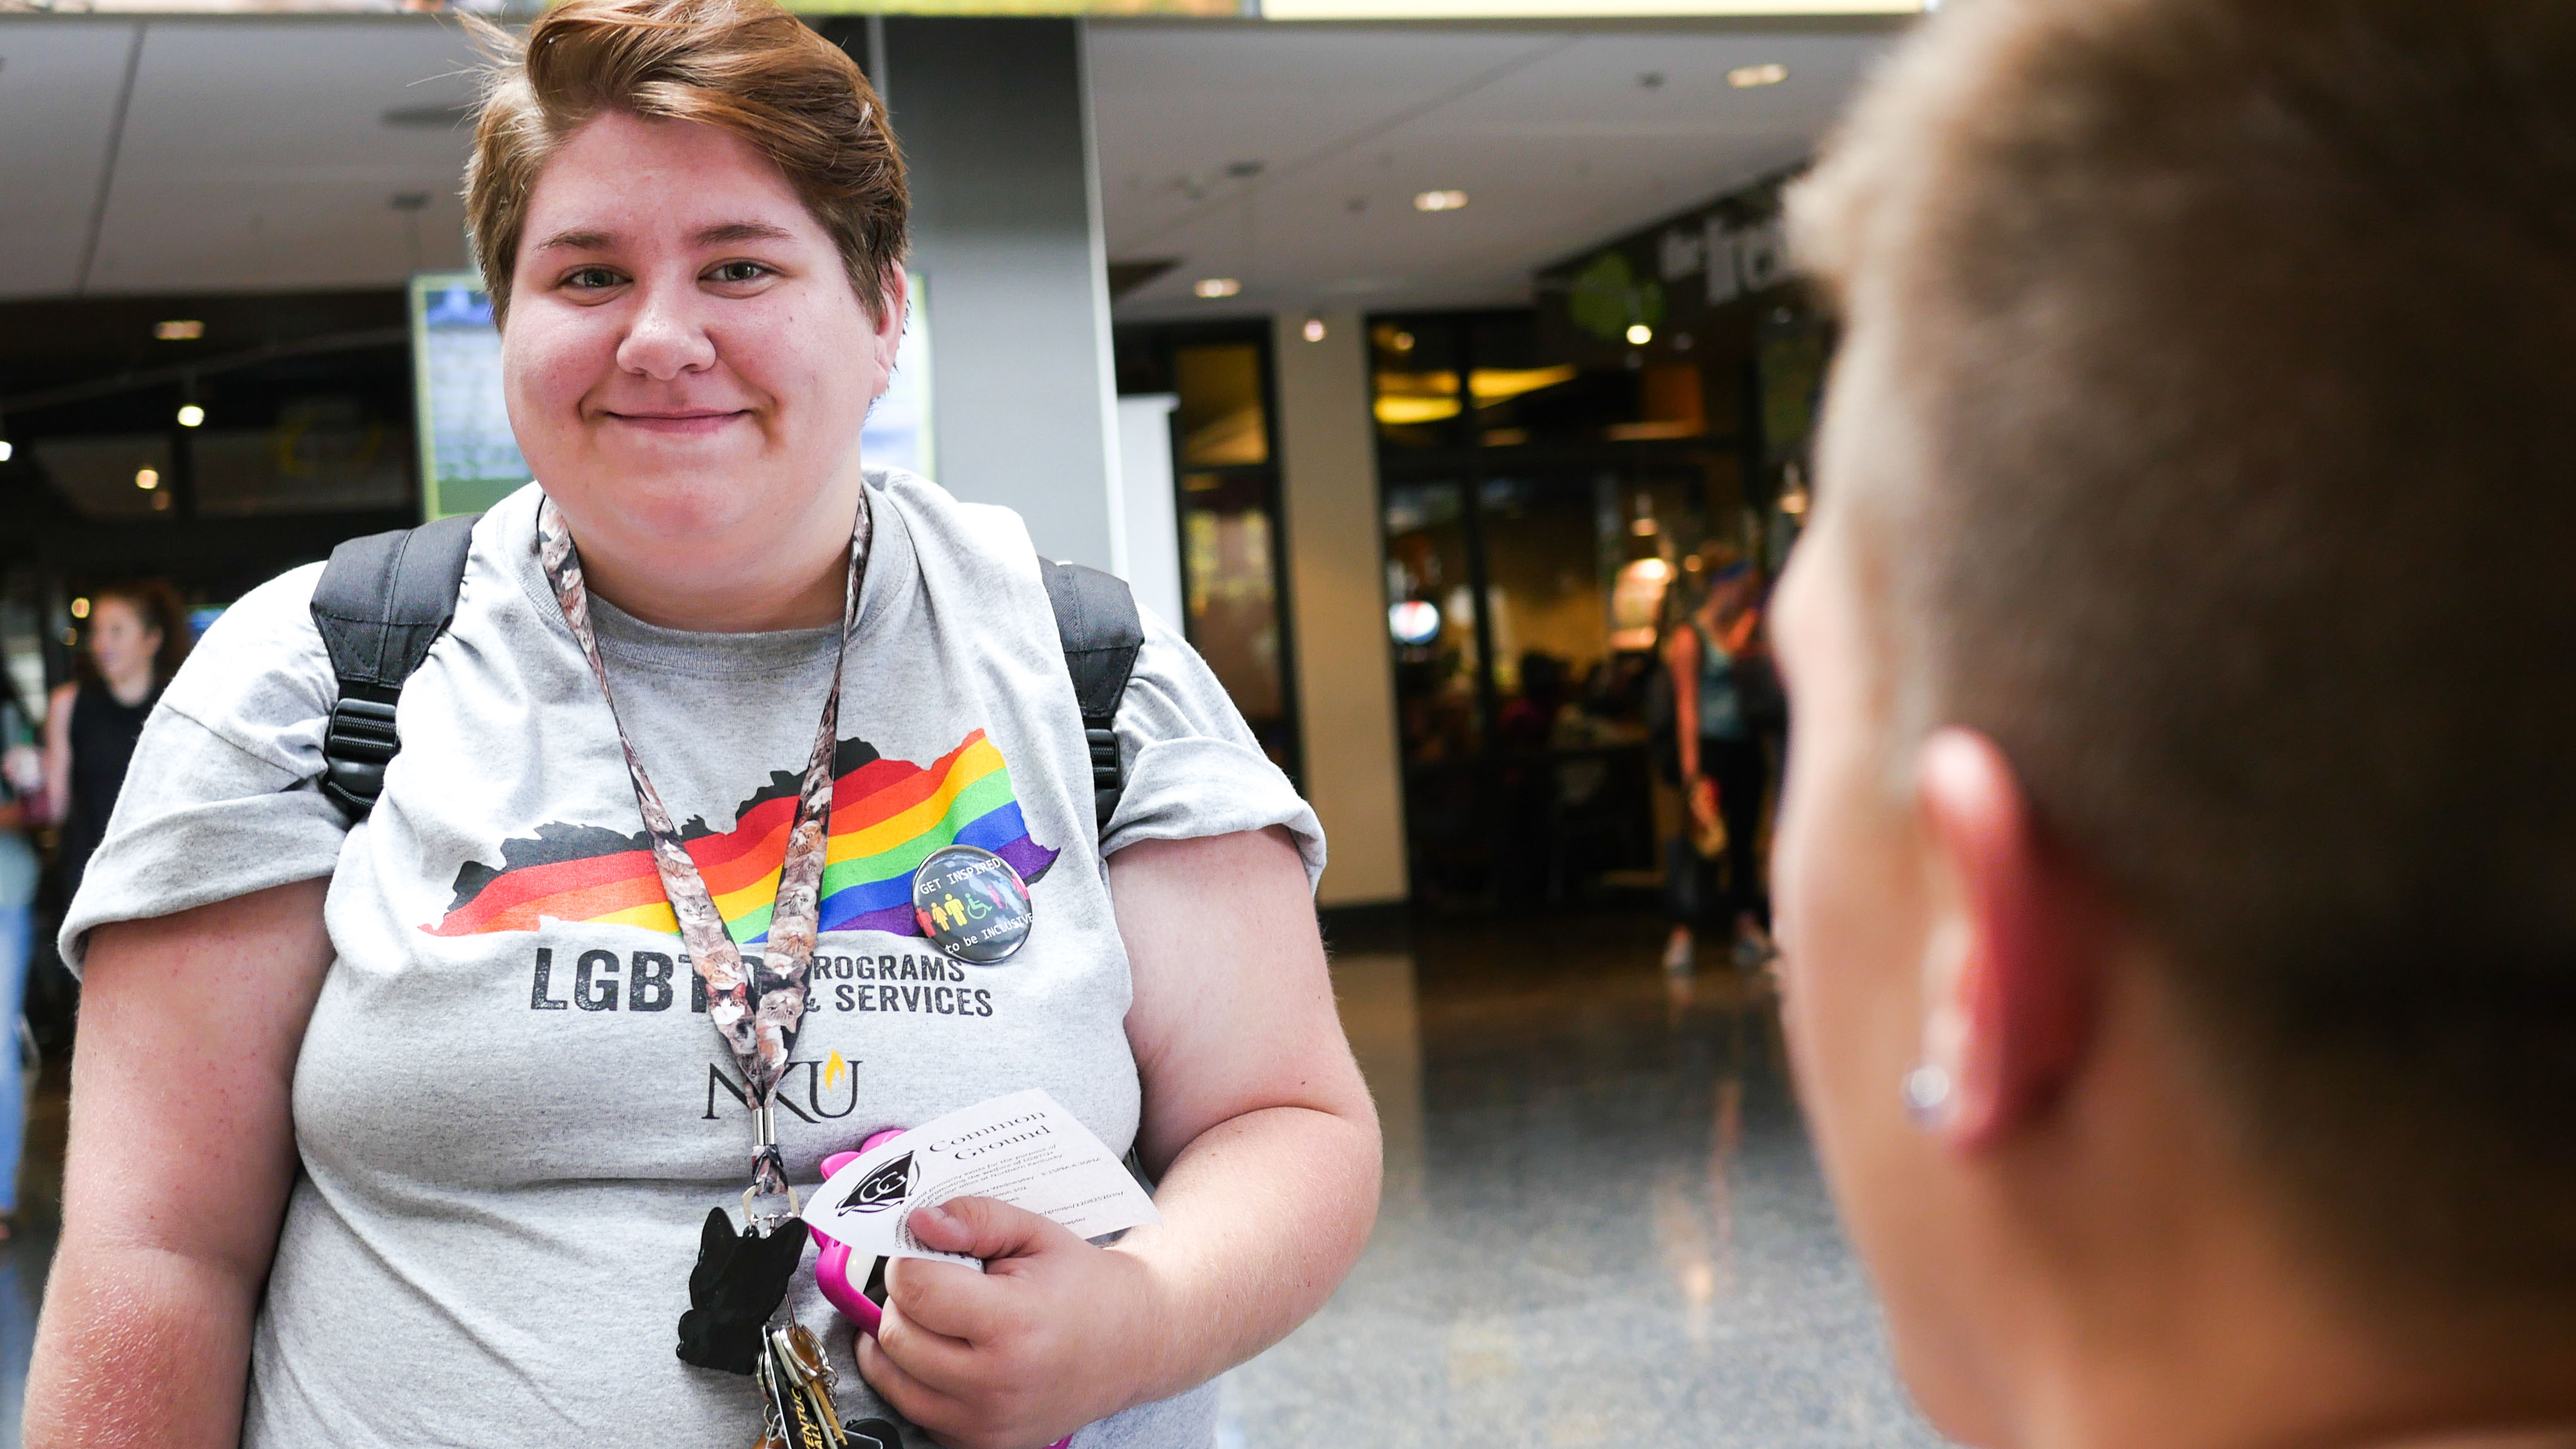 LGBTQ services provide support to everyone in the community. This student is feeling the love.